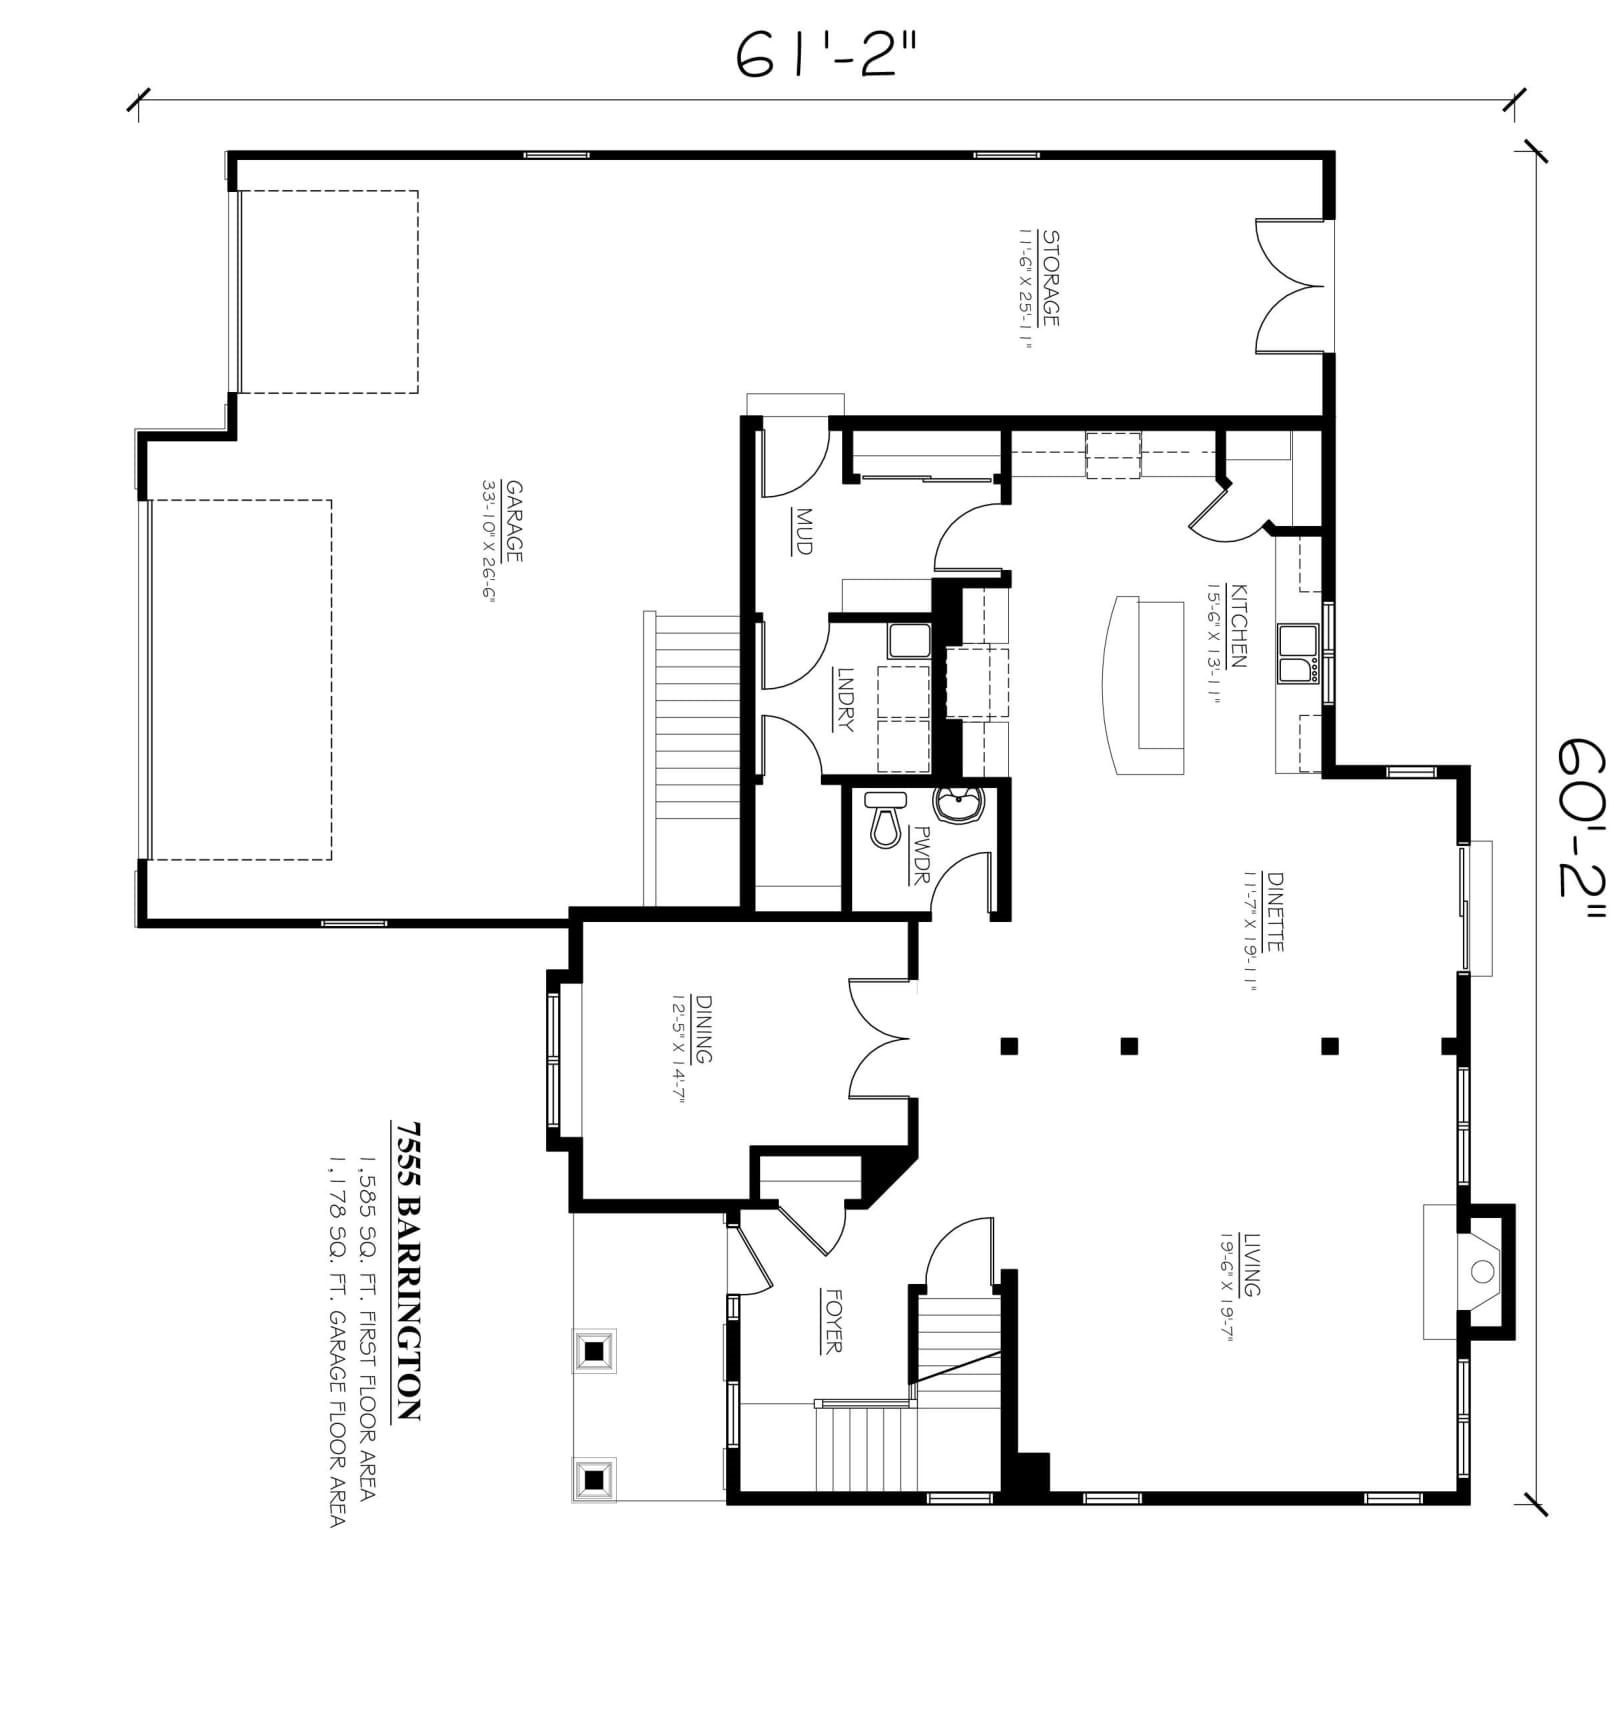 Kaerek Homes Barrington First Floor Plan